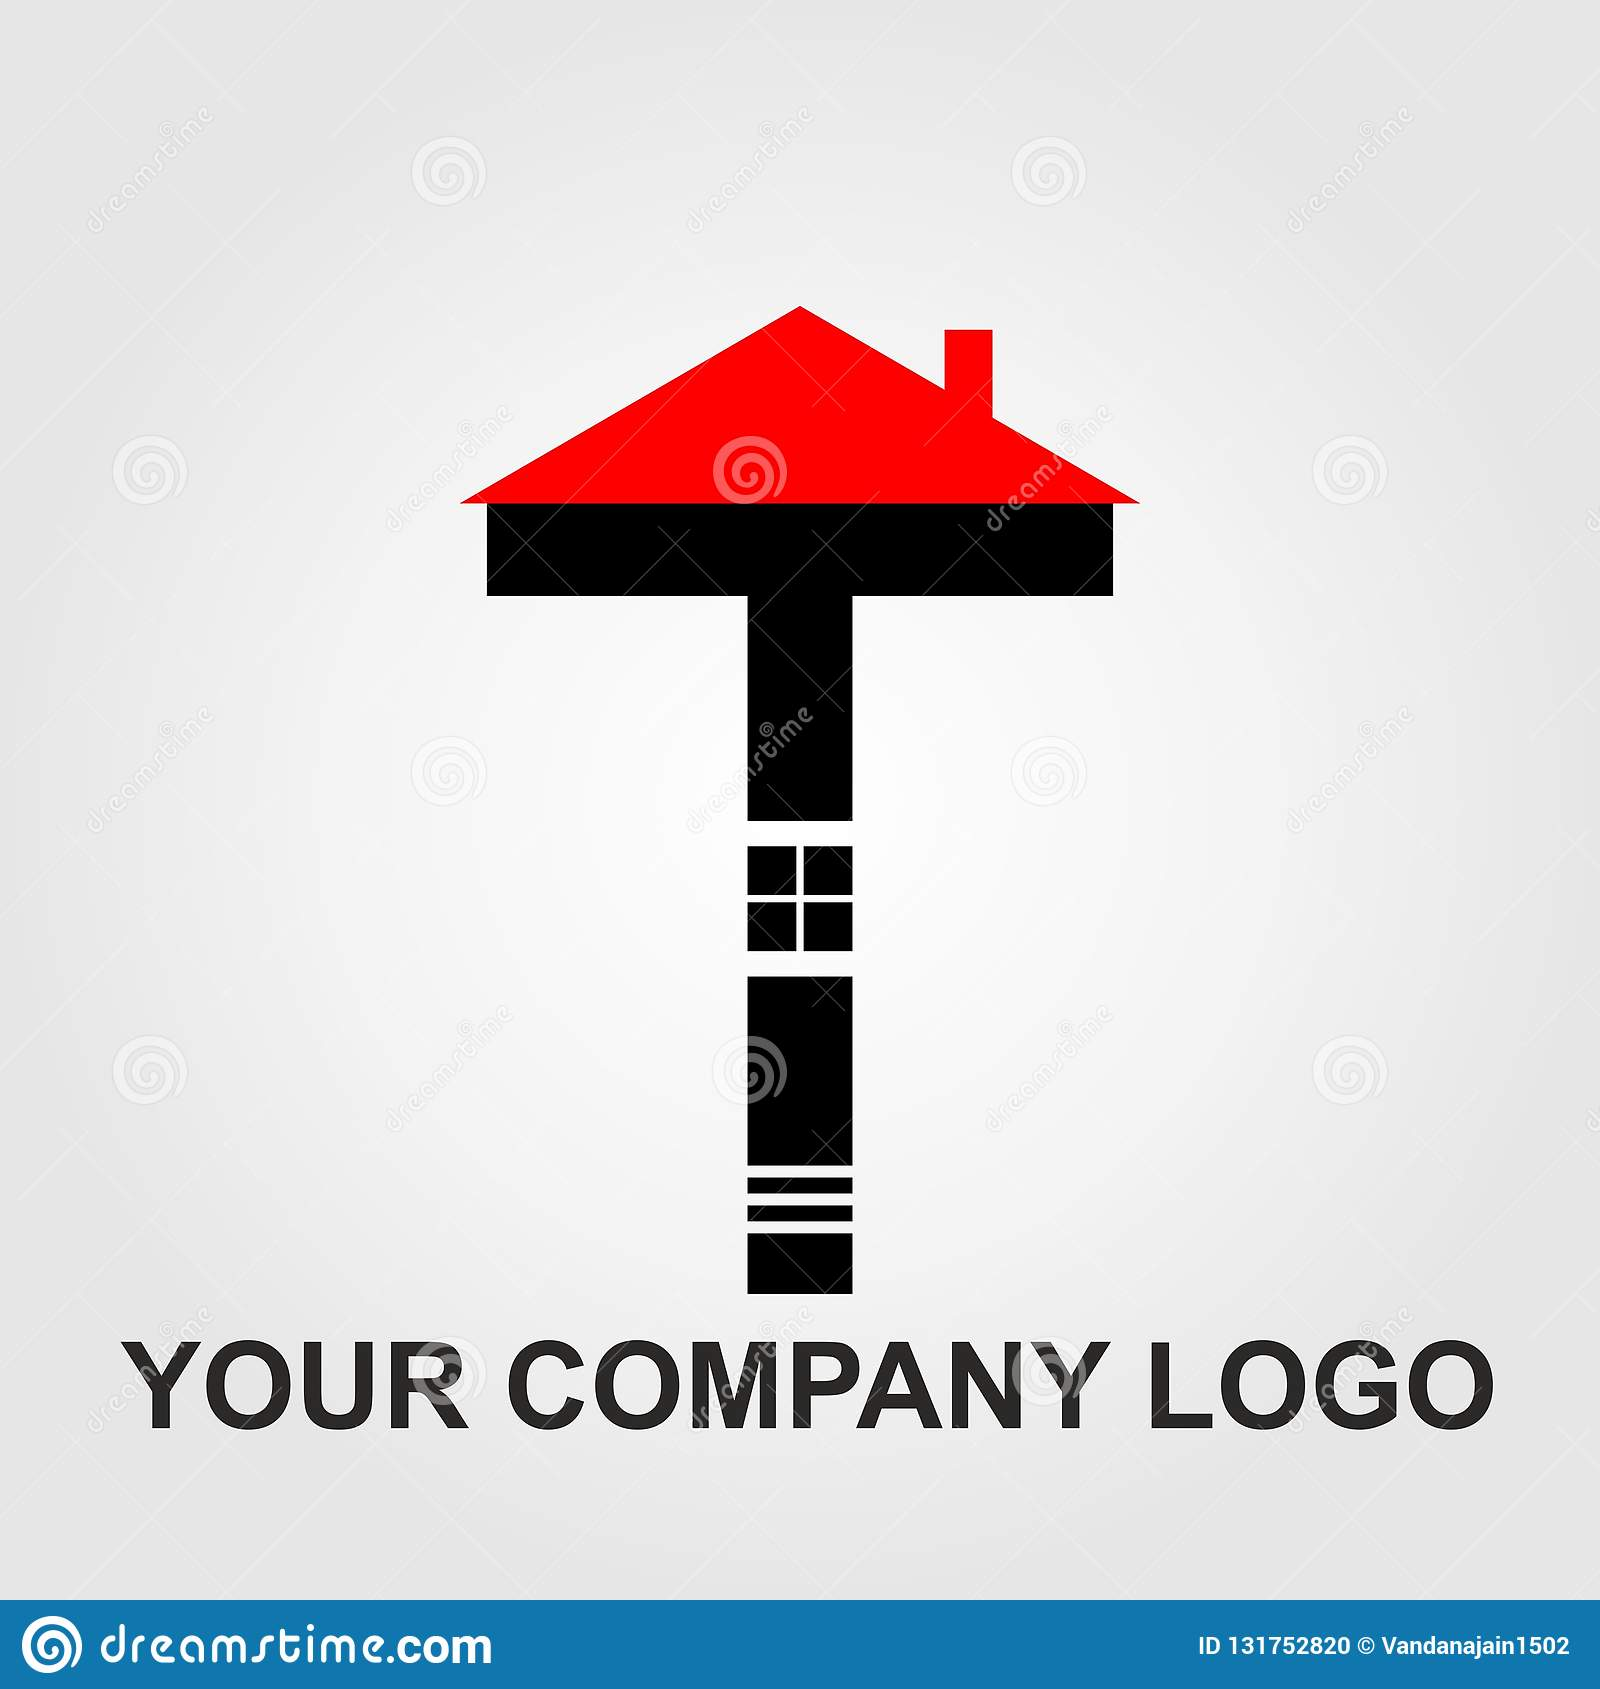 Red And Black Home And Company Logo Vector Set Design Letter